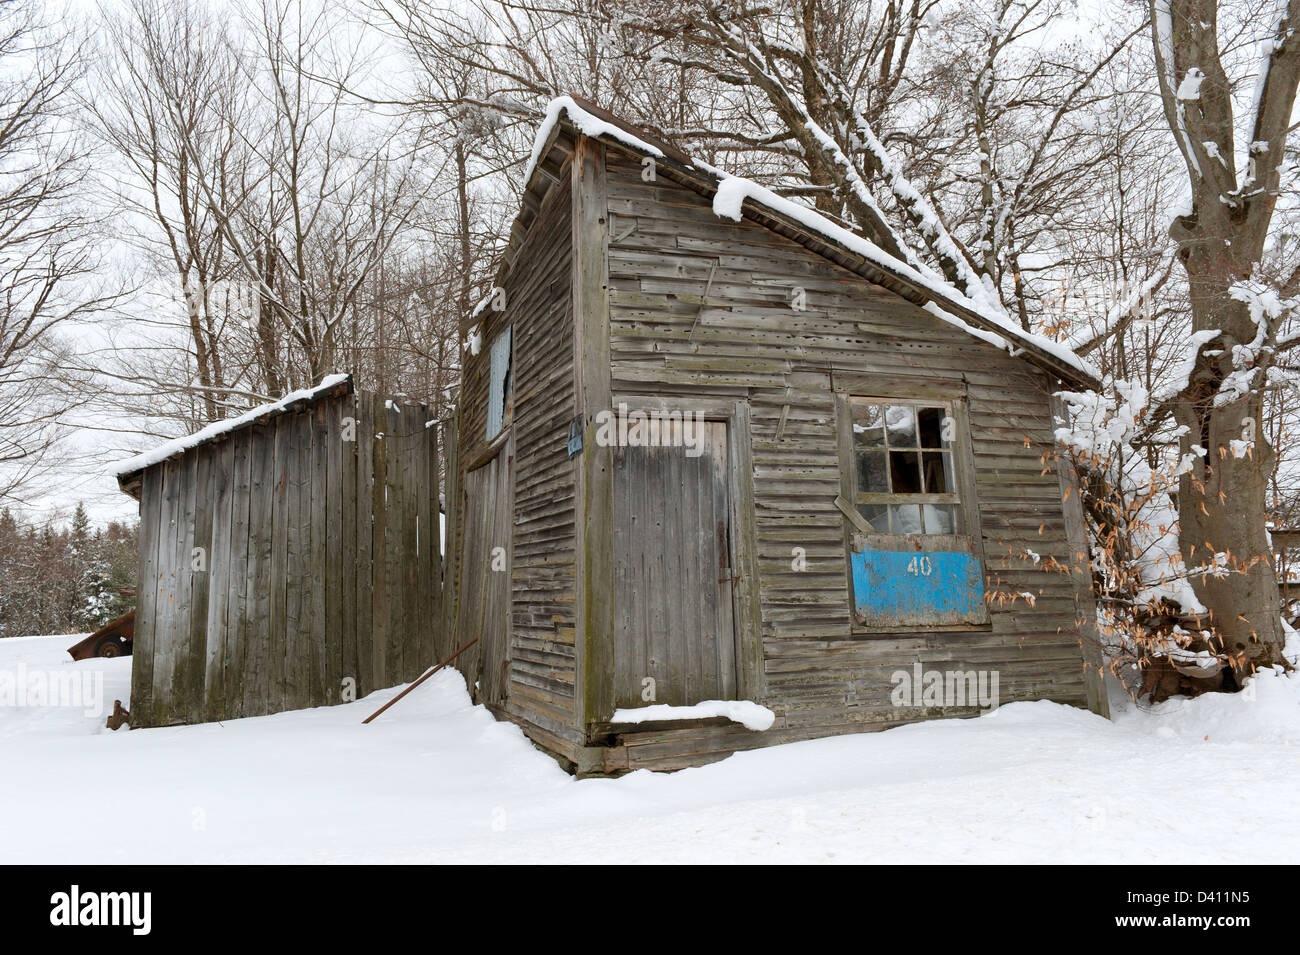 Old abandoned wooden shed, Eastern Townships, province of Quebec, Canada. - Stock Image